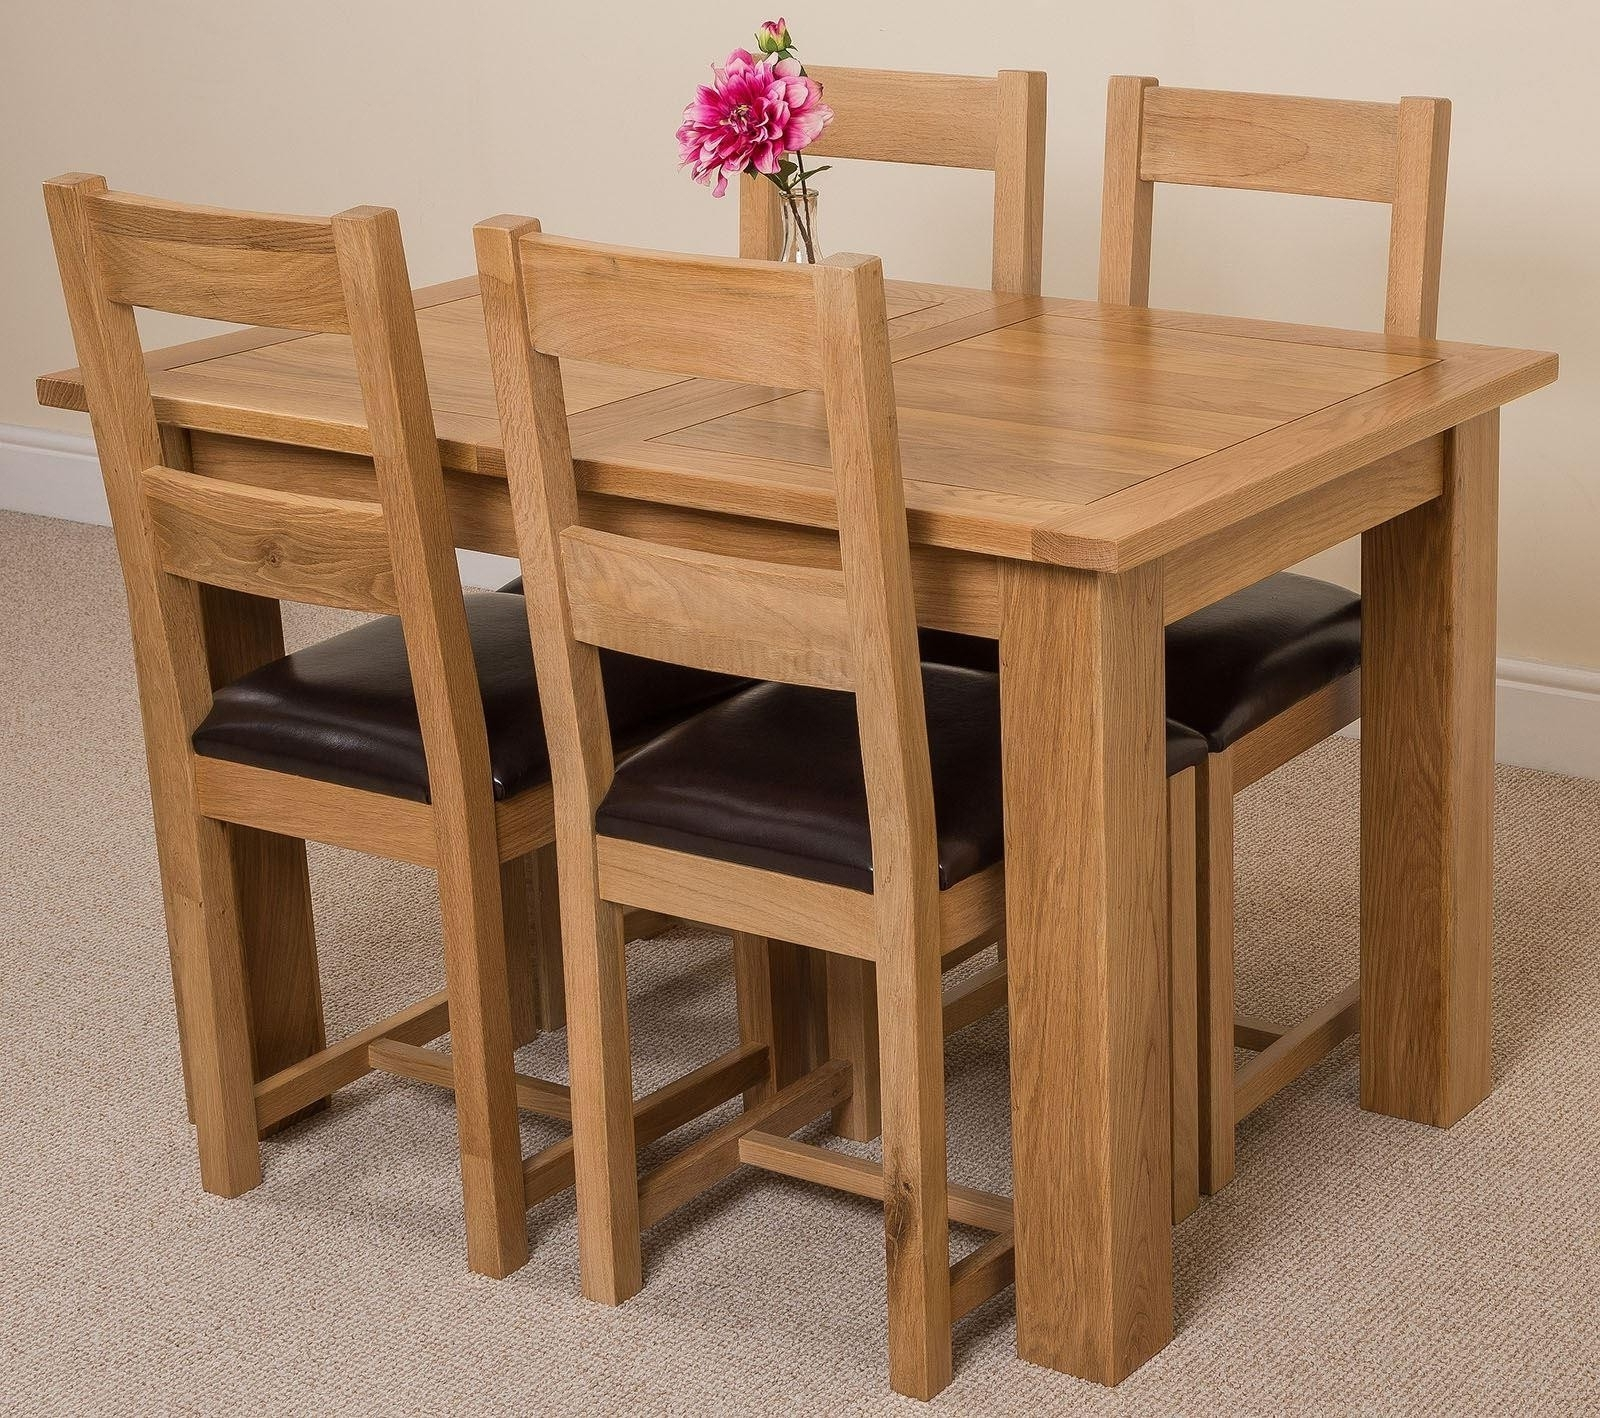 Oak Furniture King Regarding Extending Oak Dining Tables And Chairs (View 13 of 25)